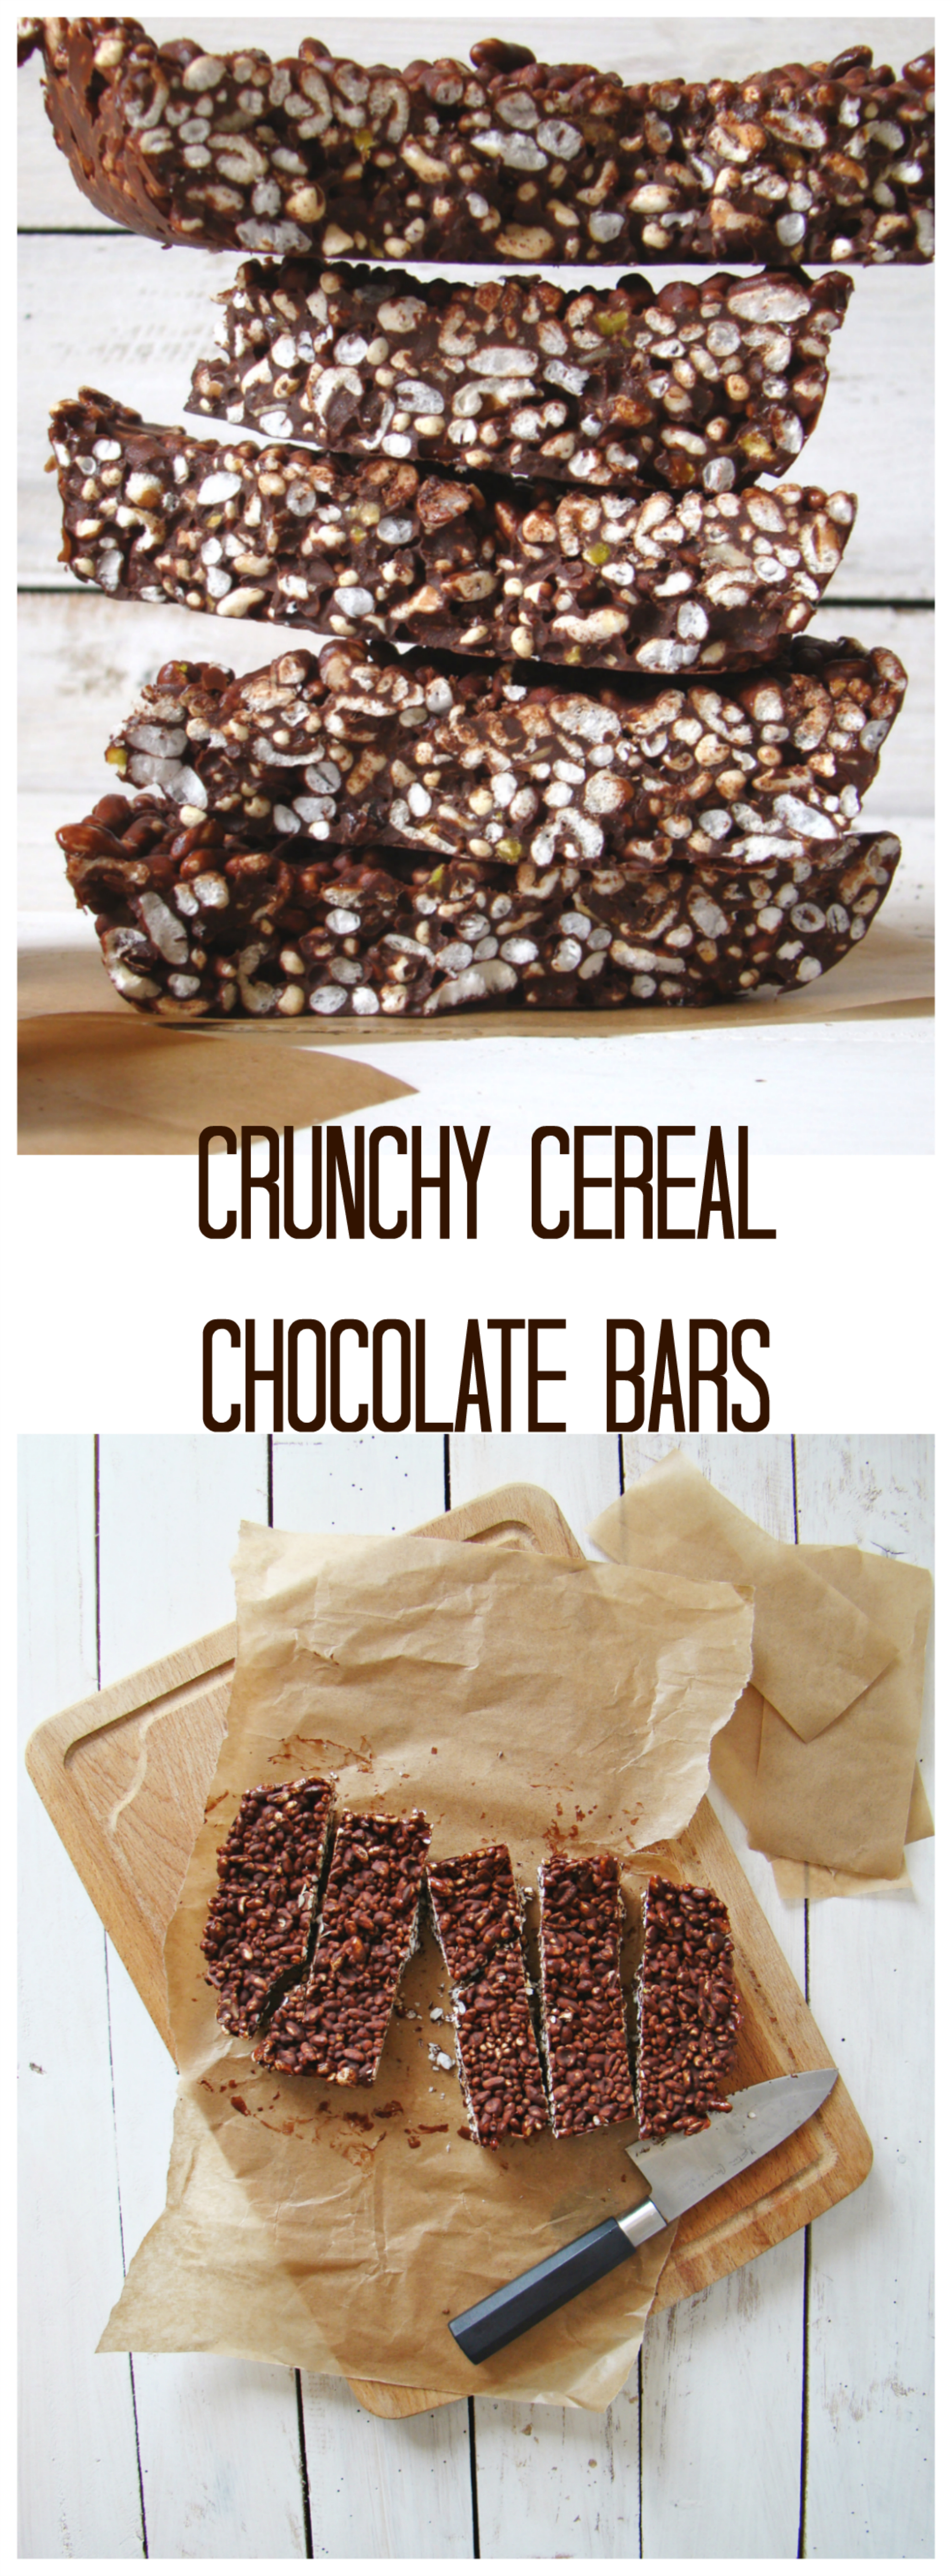 Crunchy Cereal Chocolate Bars